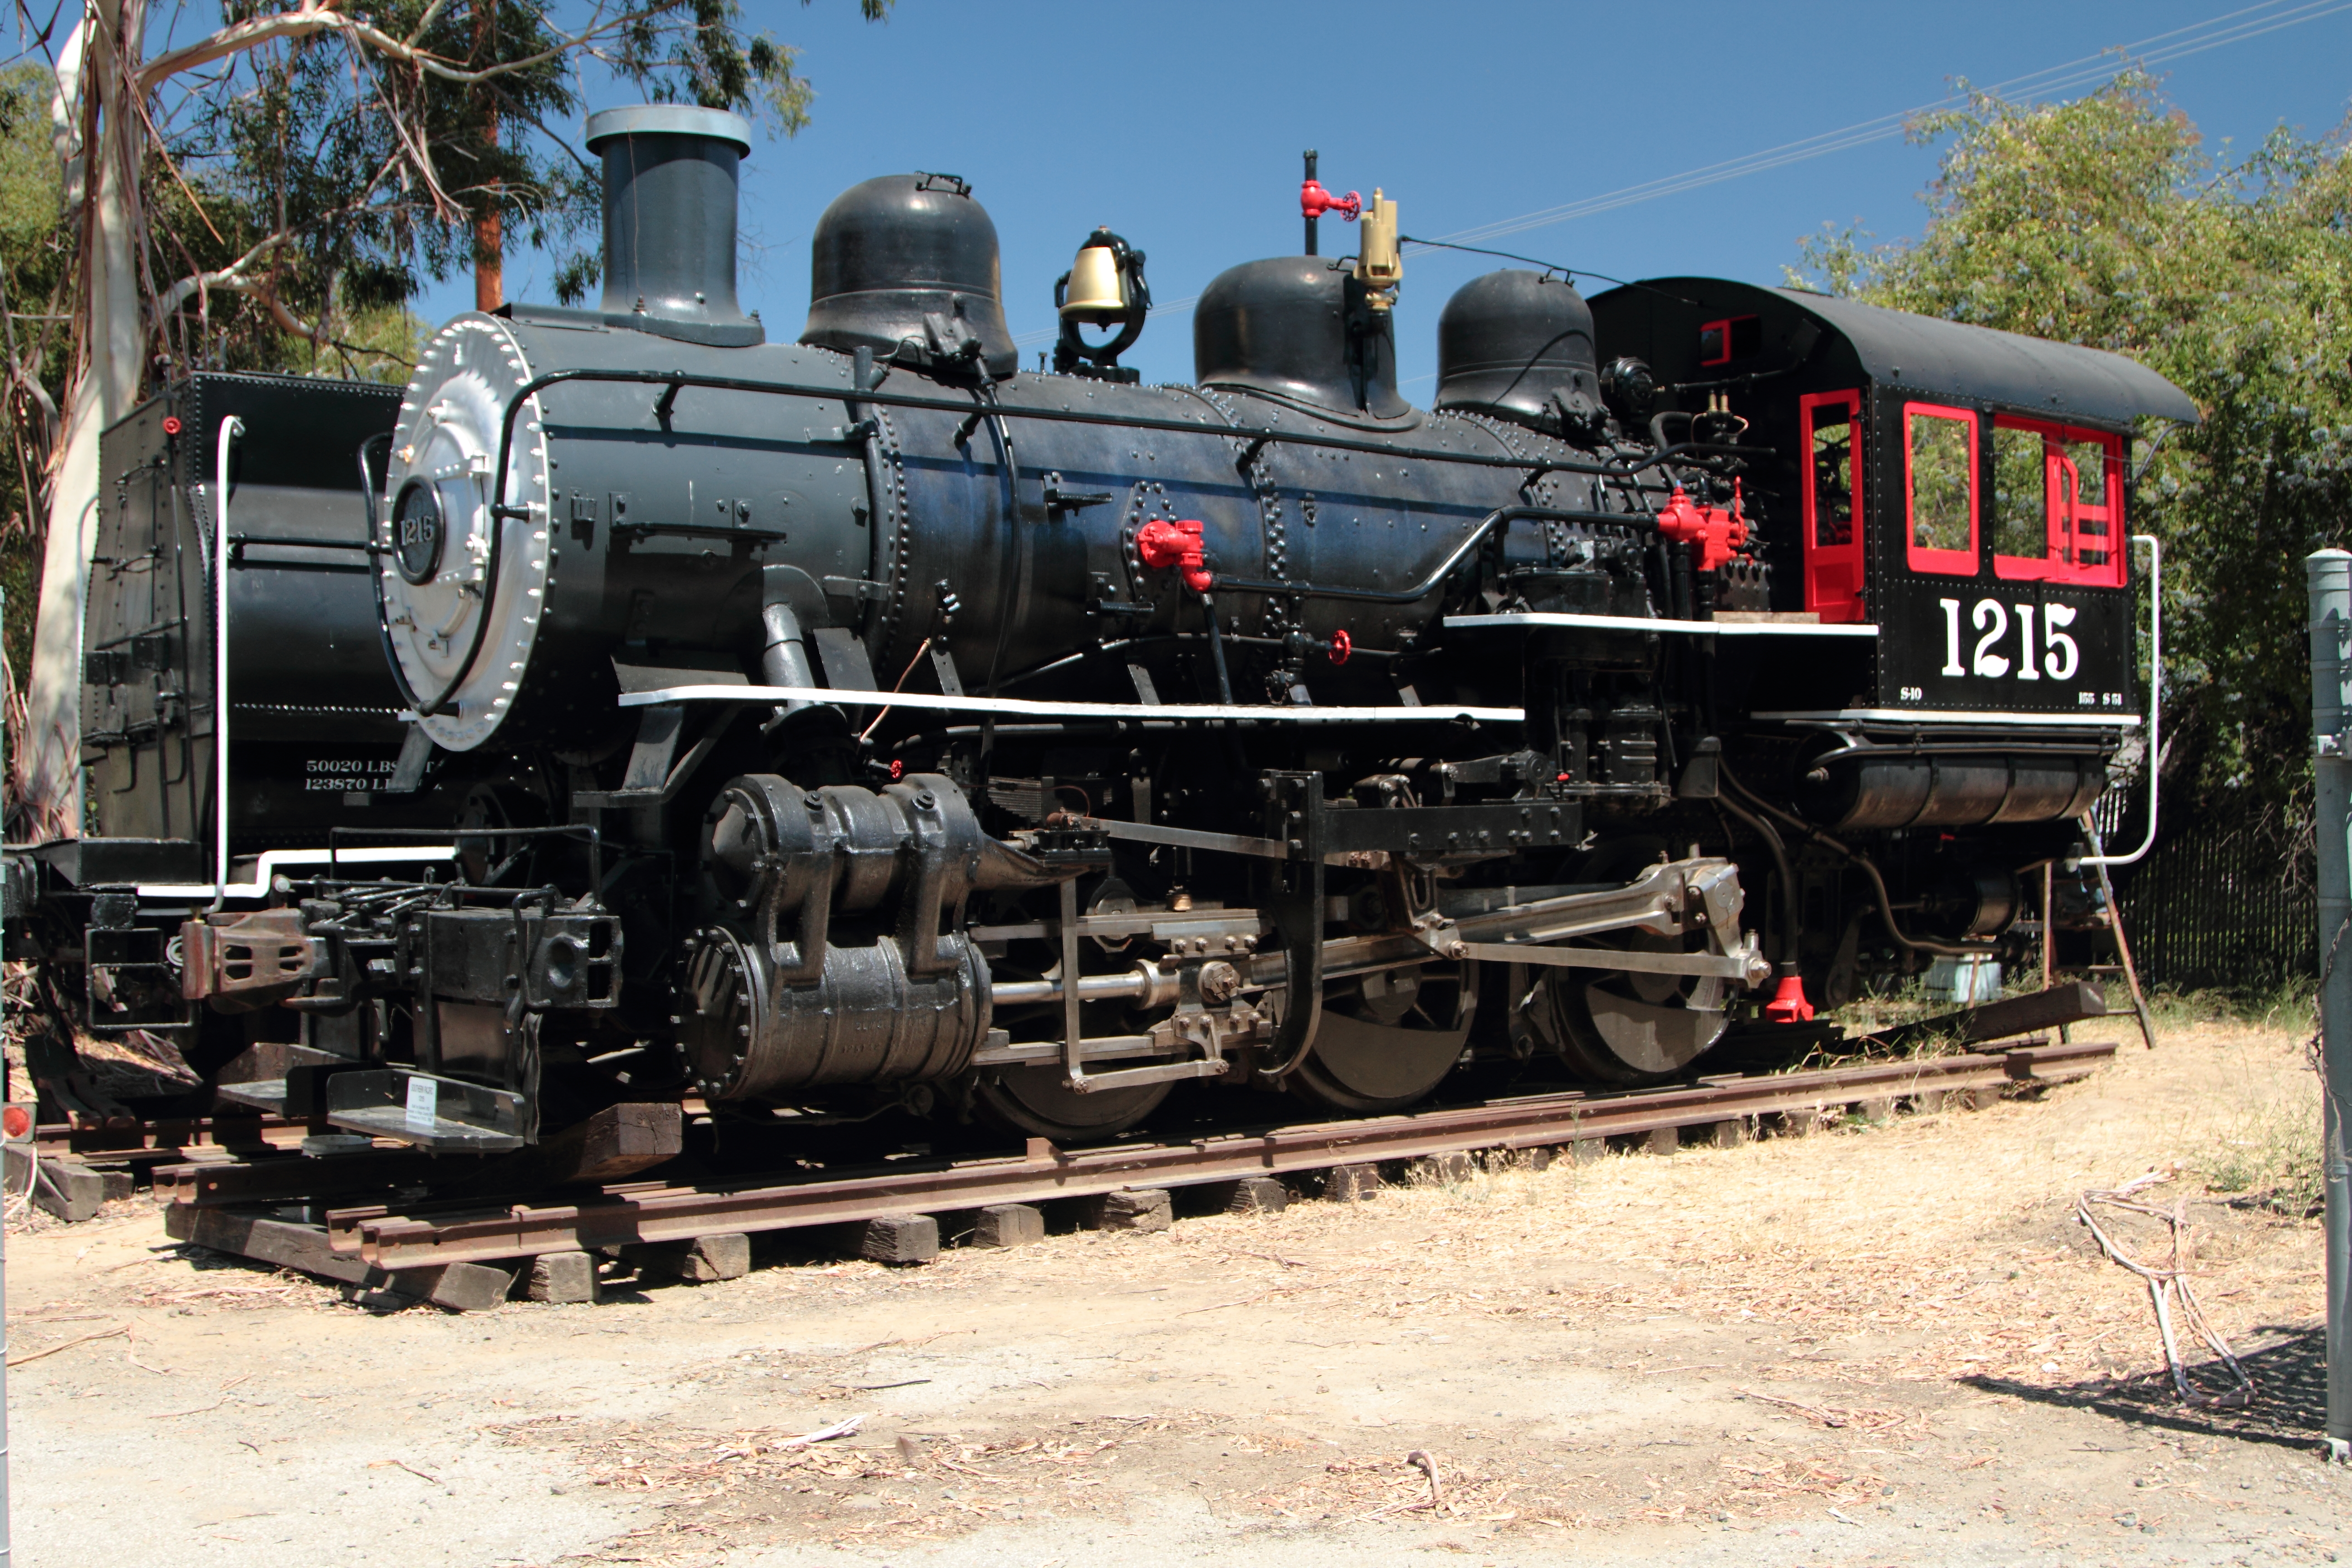 File:Southern pacific 1215.jpg